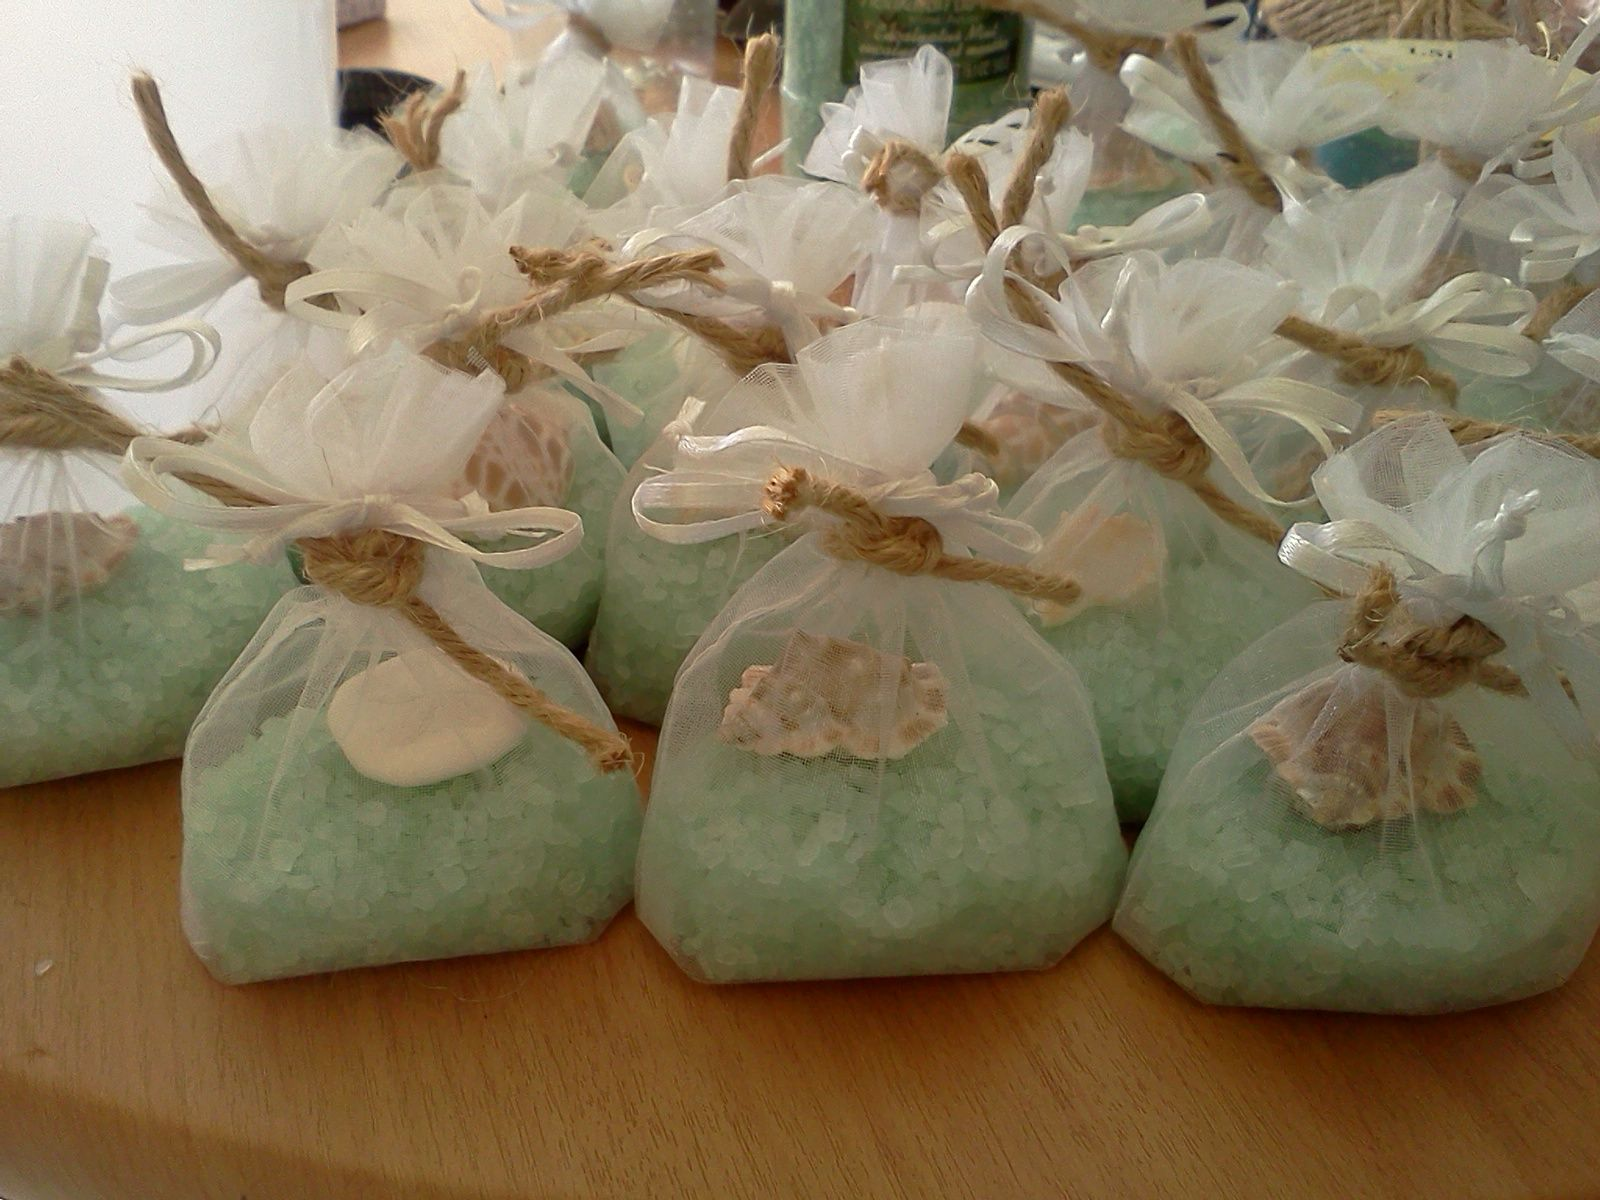 Baby Shower Favors Ocean Theme ~ Bath salts and one small seashell or sanddollar in mesh